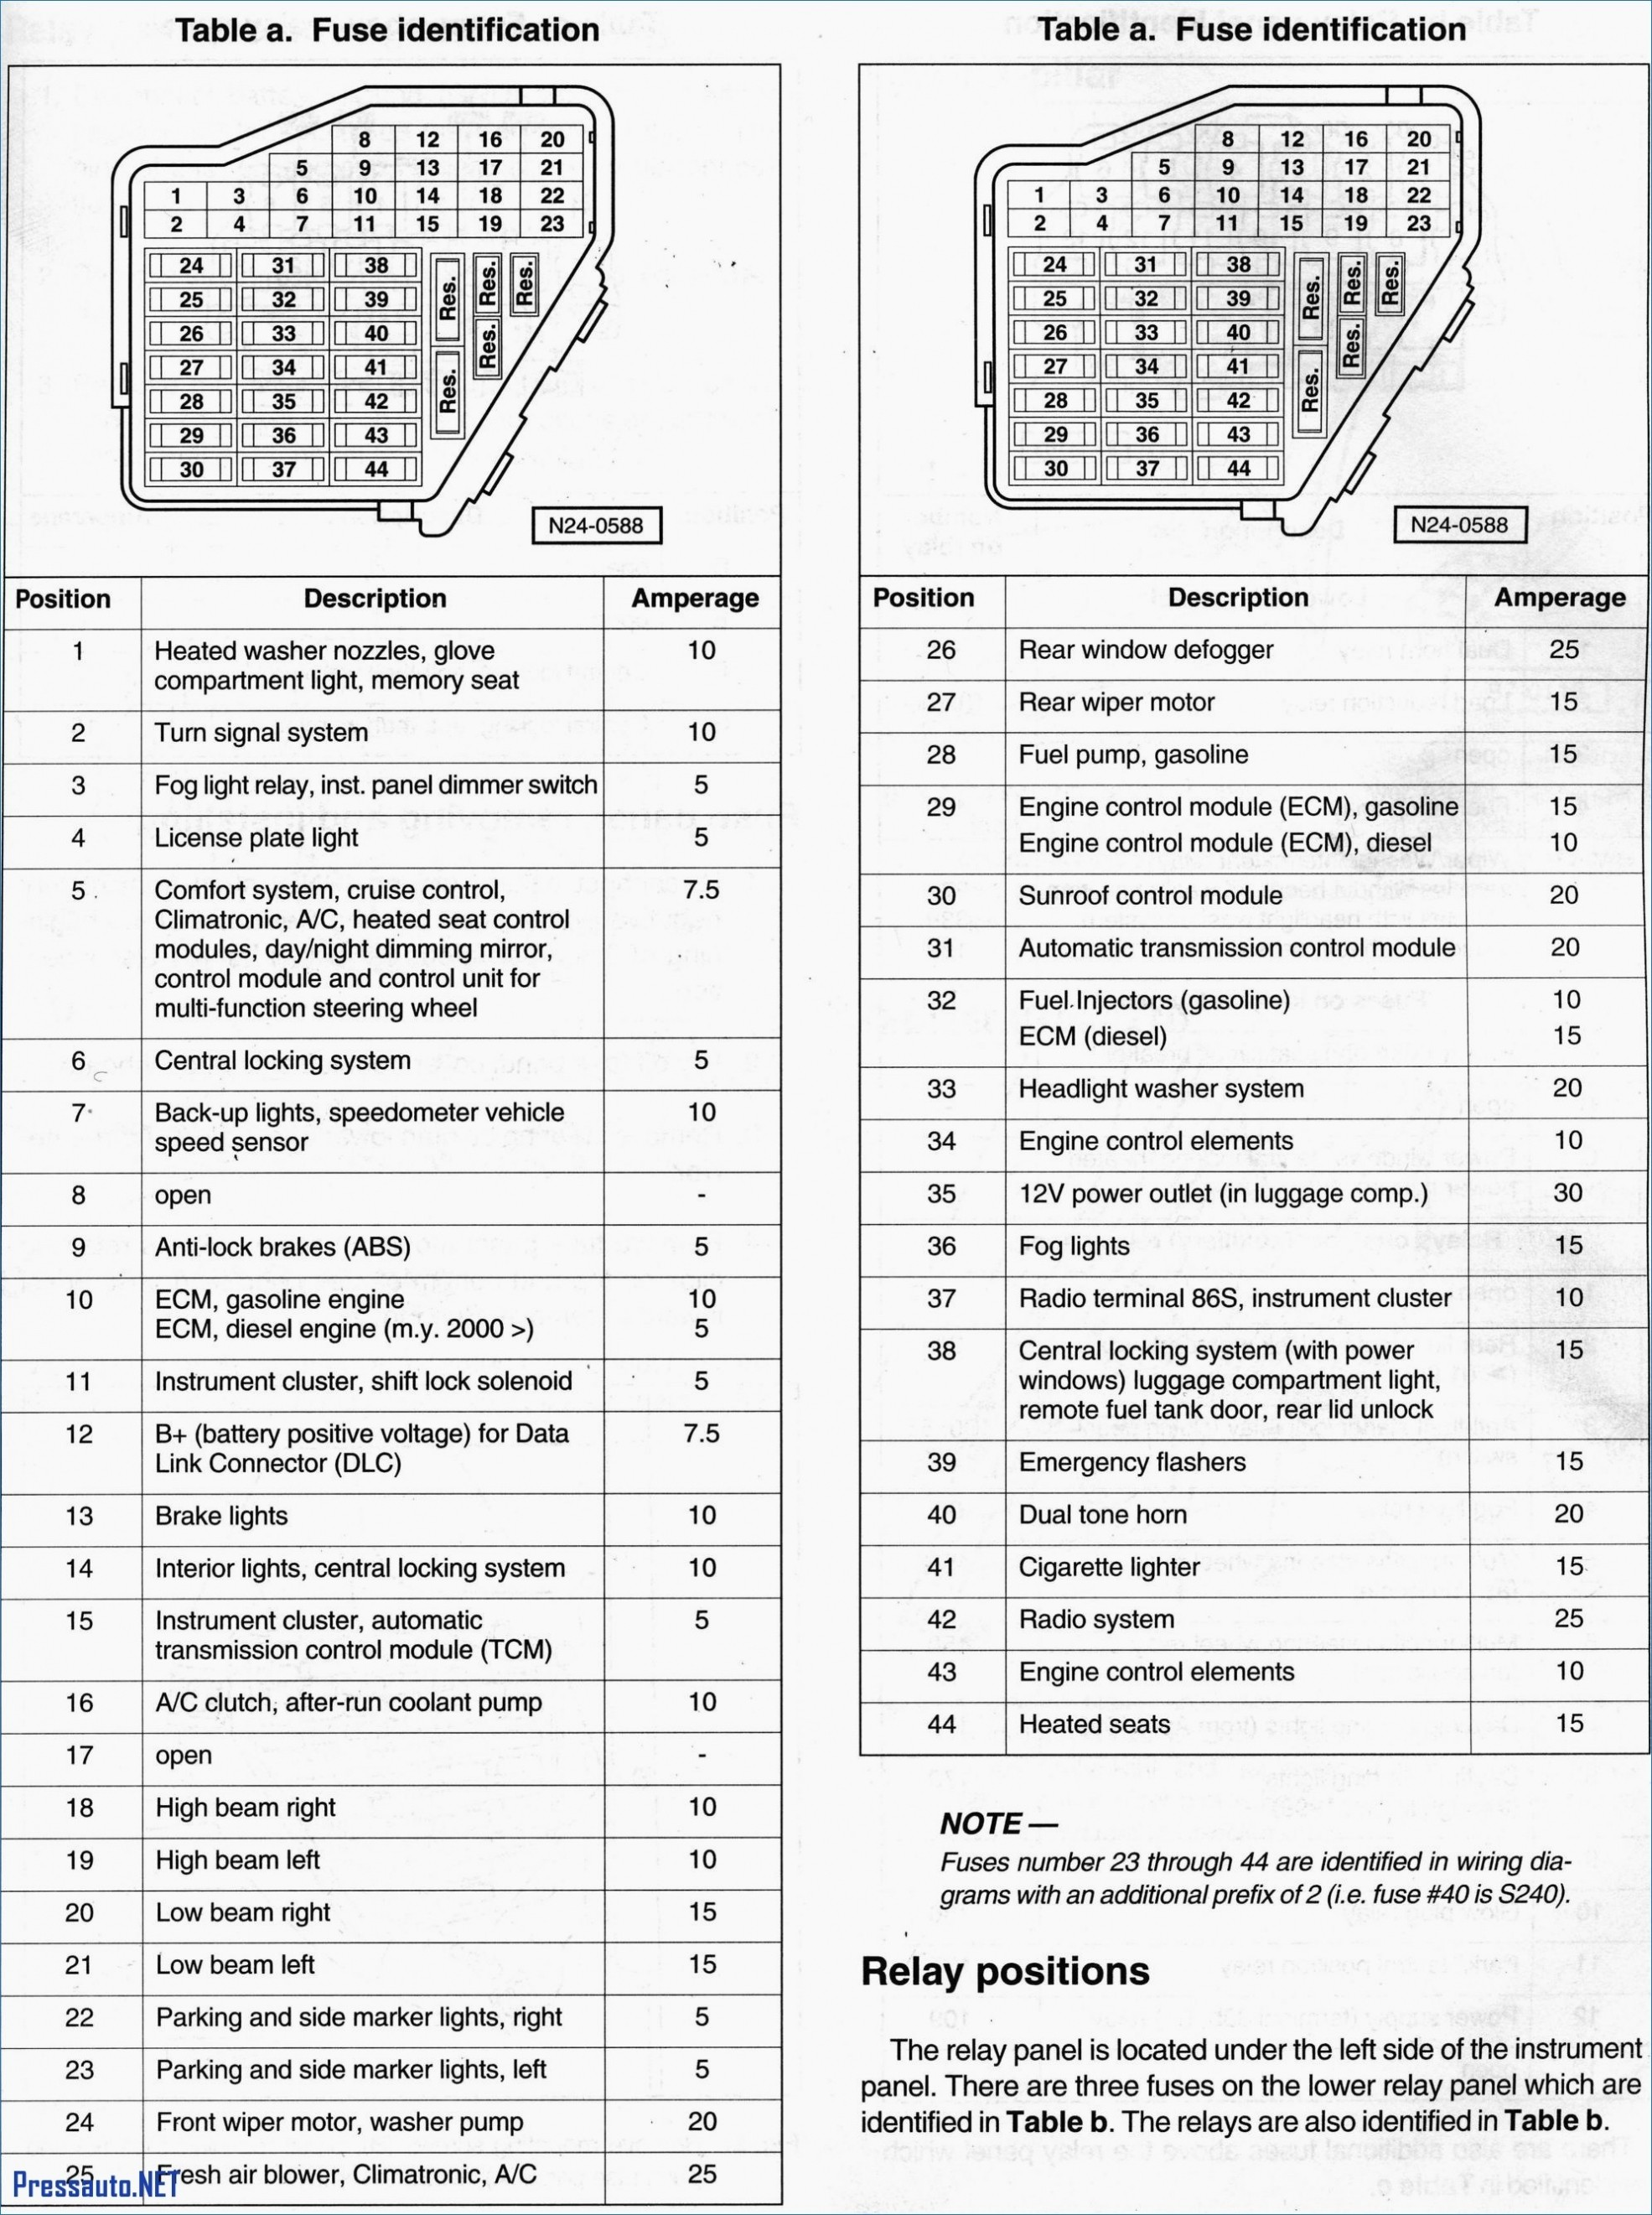 2003 Audi Tt Fuse Diagram - 2010 Jk Radio Wiring for Wiring Diagram  Schematics | Audi Tt Mk1 Fuse Box Layout |  | Wiring Diagram Schematics